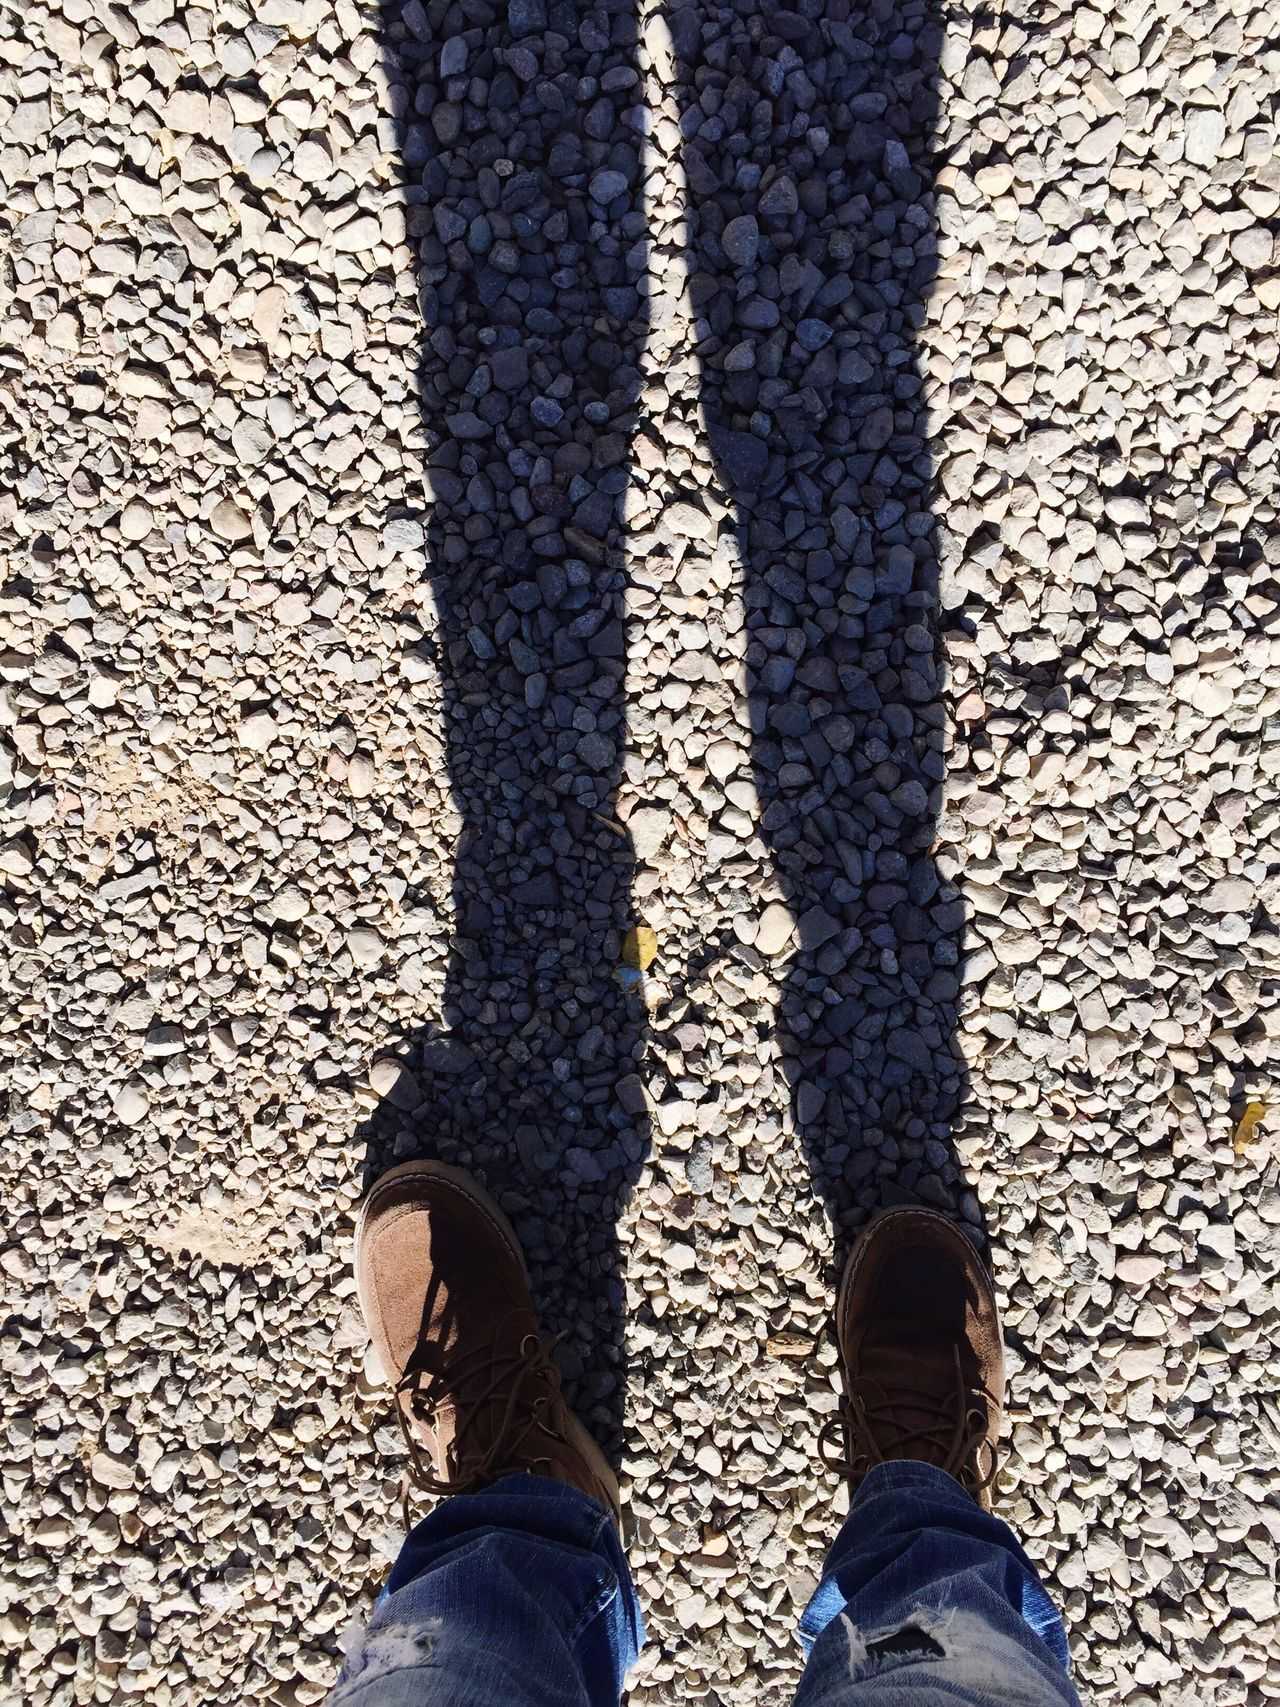 Piernas largas. De pie .. Jeans Legs Blue Shadows That's Me Extension Stones Piernas De Piedra Farellones Depie Sombra